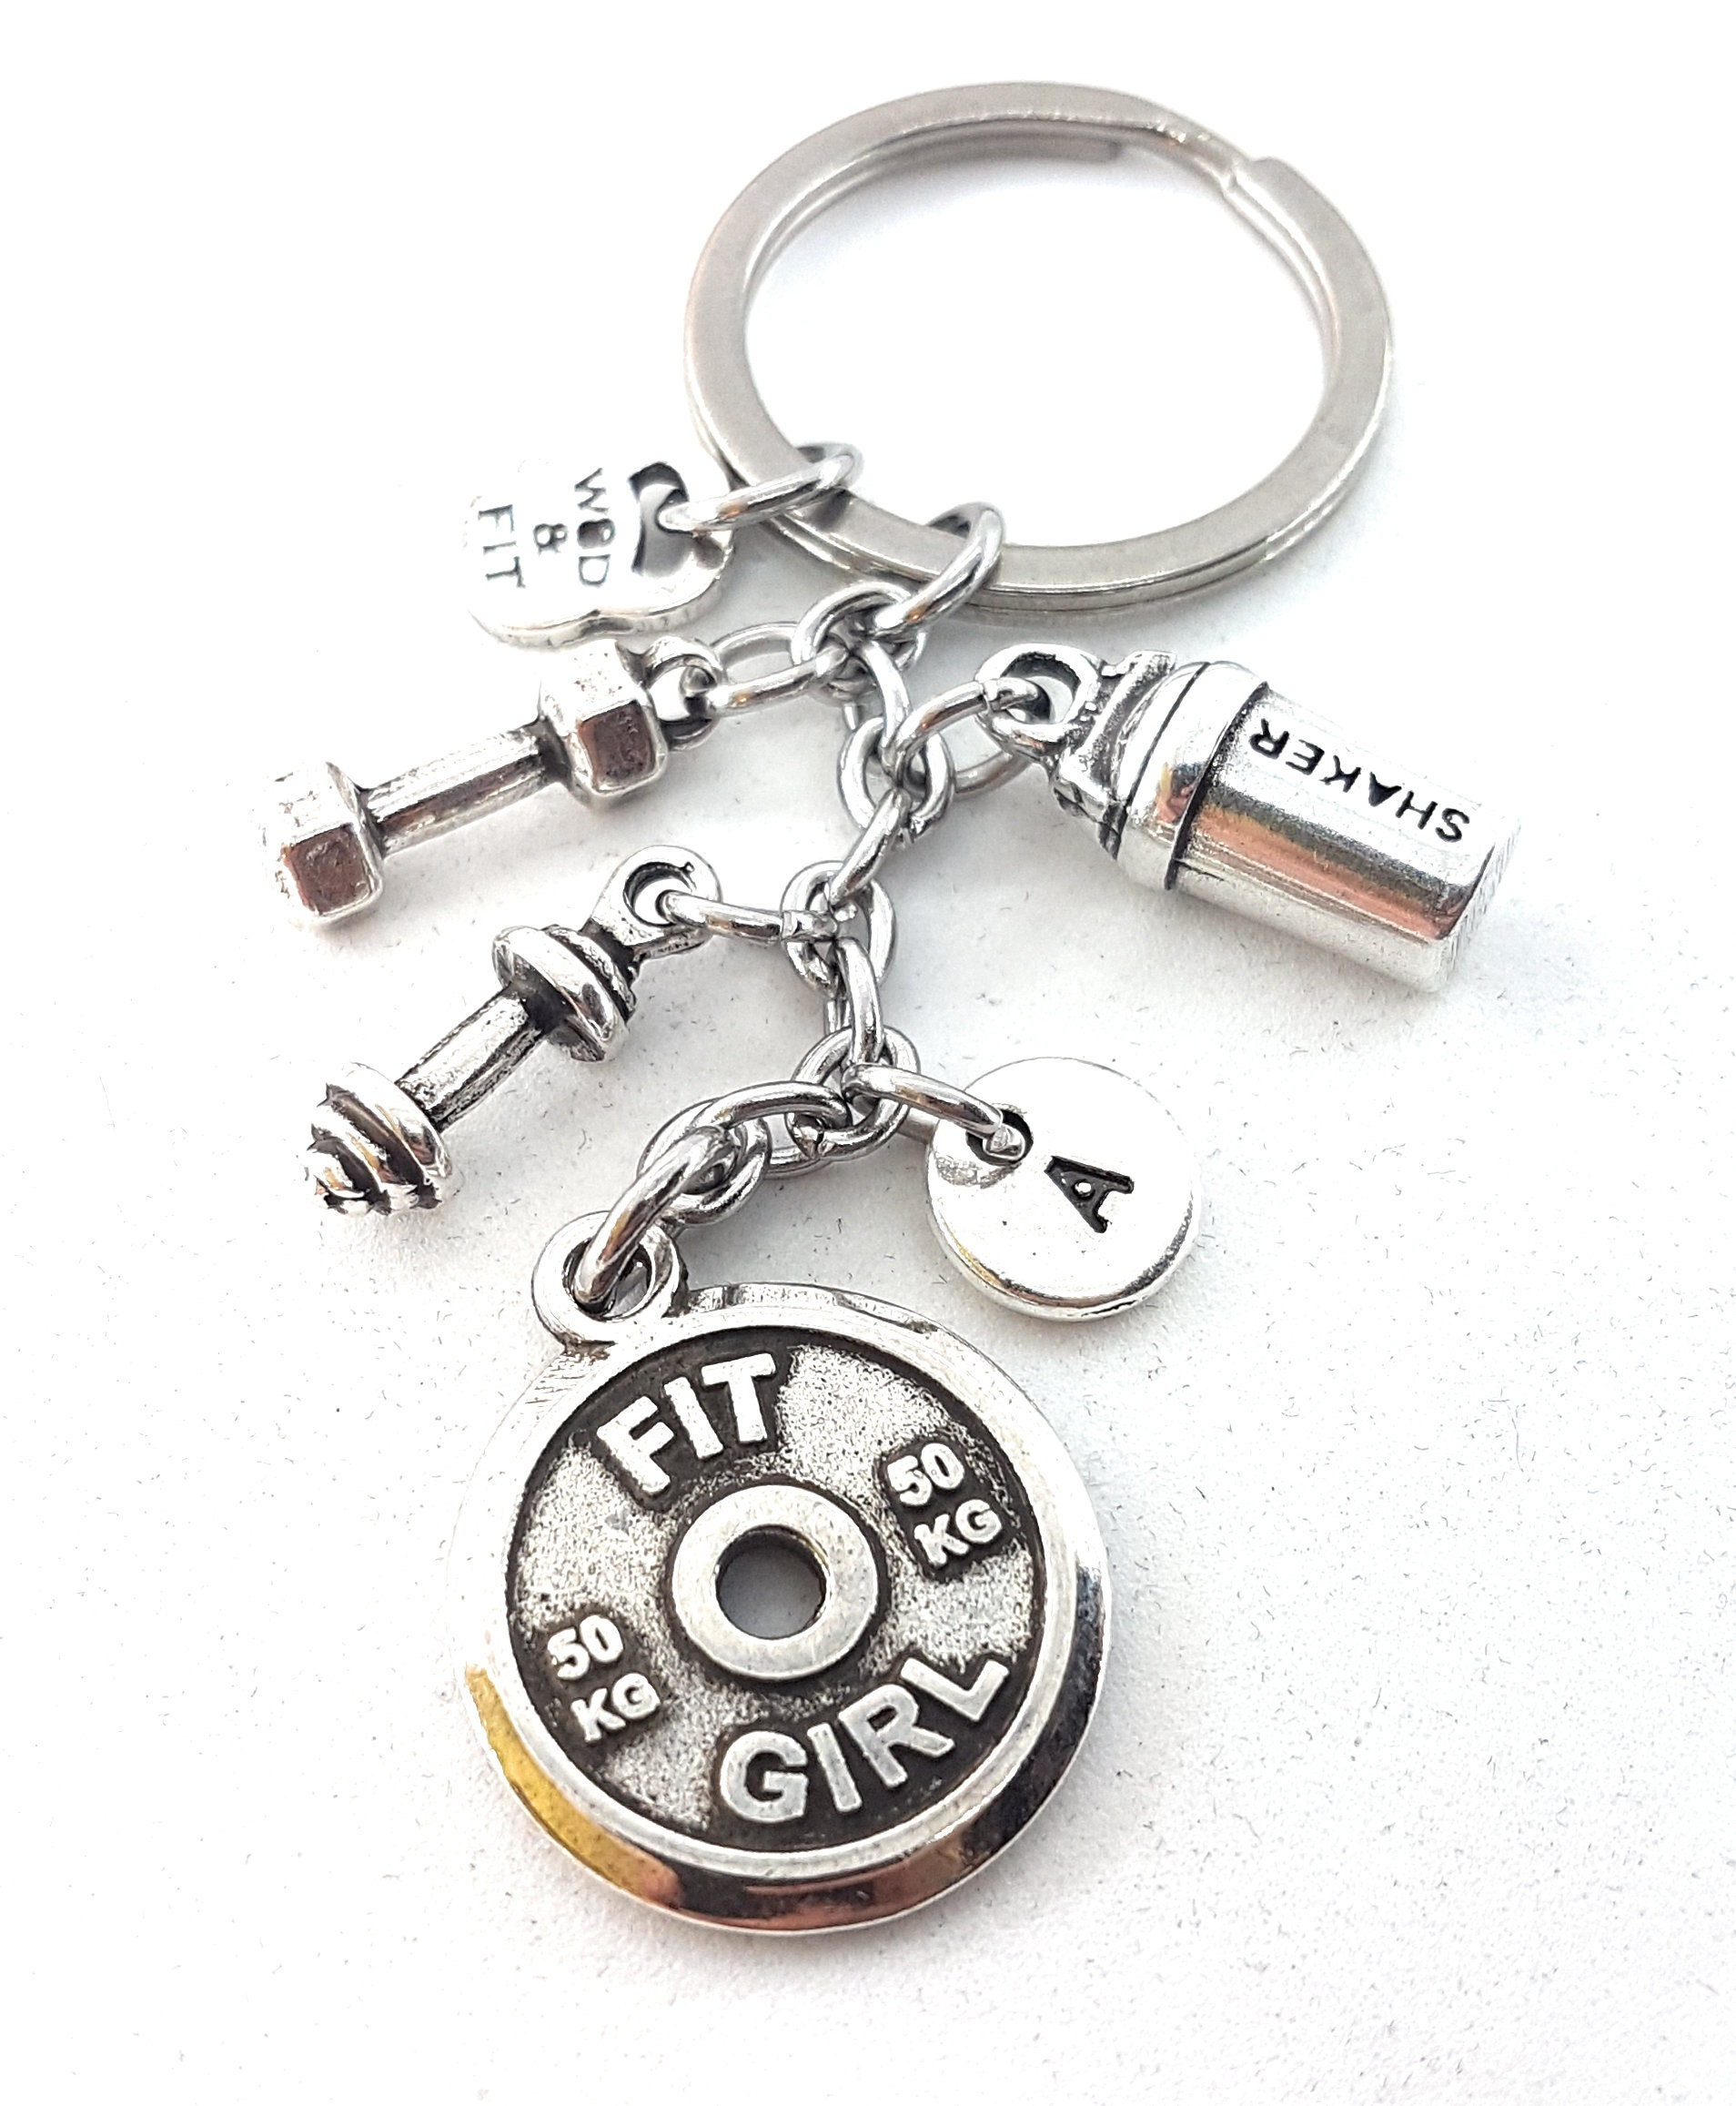 BELIEVE Fitness Gift Bodybuilding Keychain Jewelry Weight Lifting Personal Trainer Crossfit Kettlebell Gym Workout Motivational